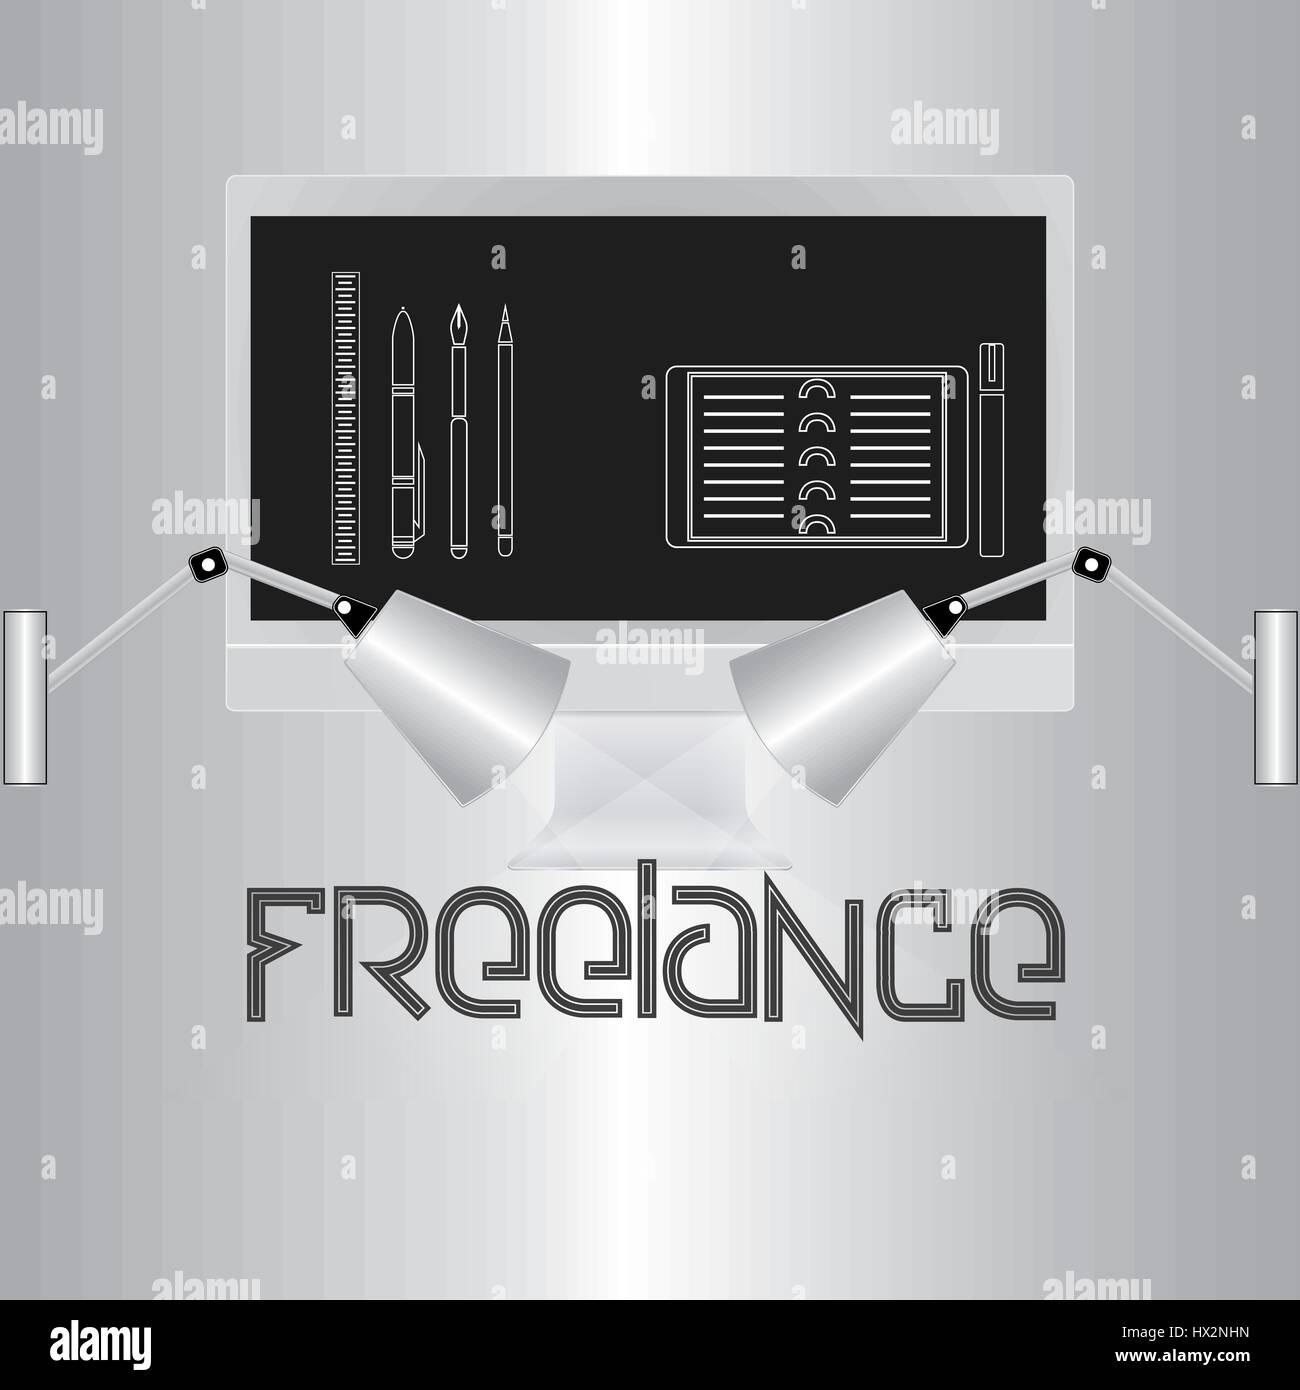 Stylish image, the word freelance on a gray gradient background. Computer monitor and lamps illuminate the text. - Stock Vector